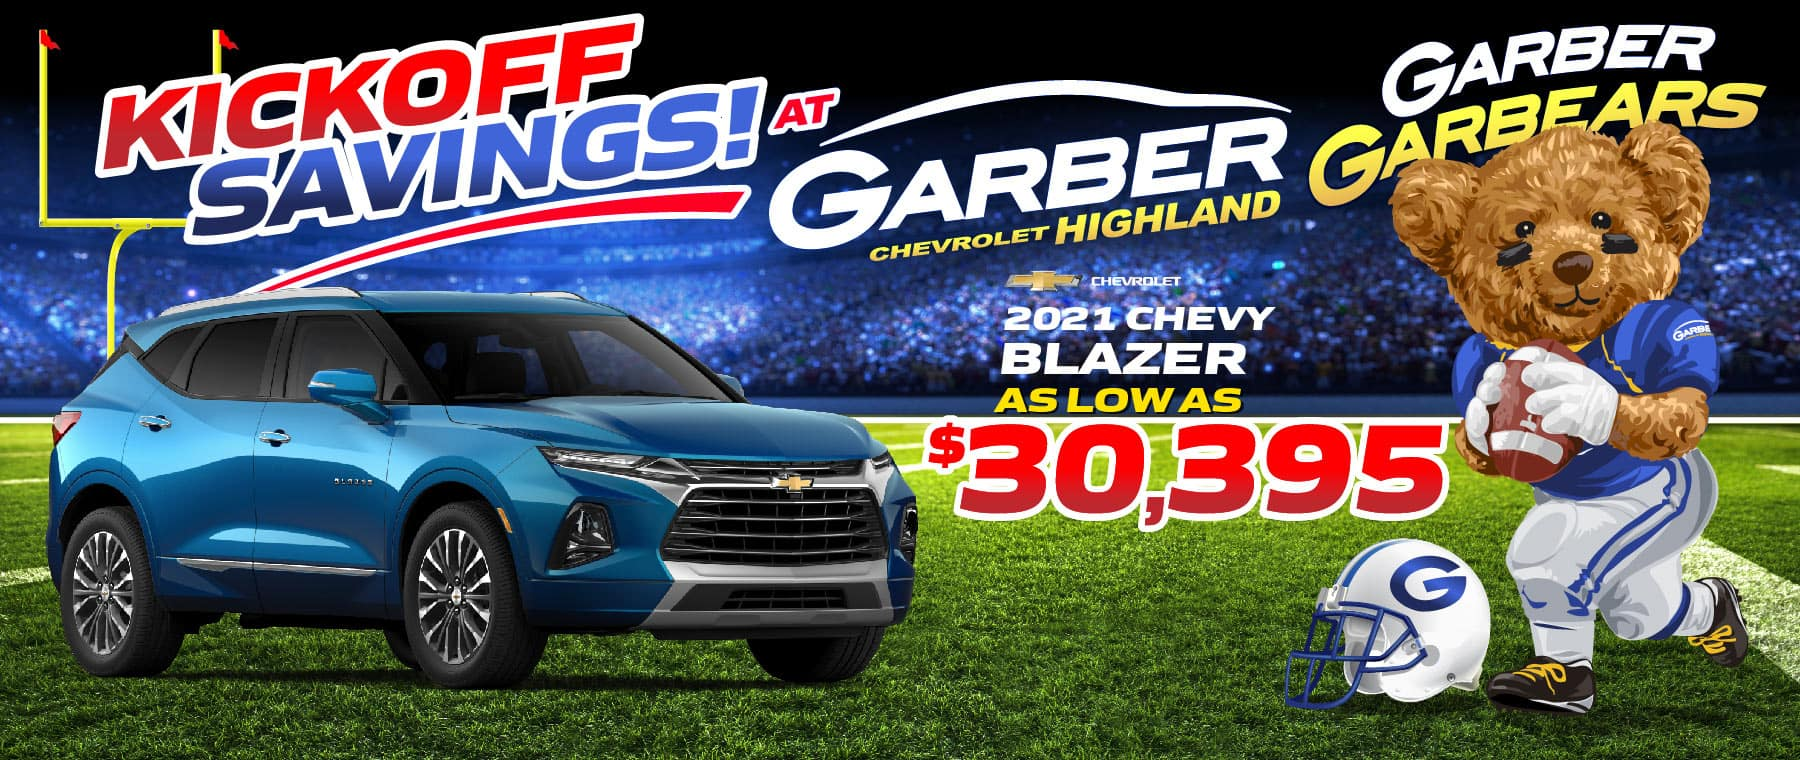 2021 Chevy Blazer - as low as $30395